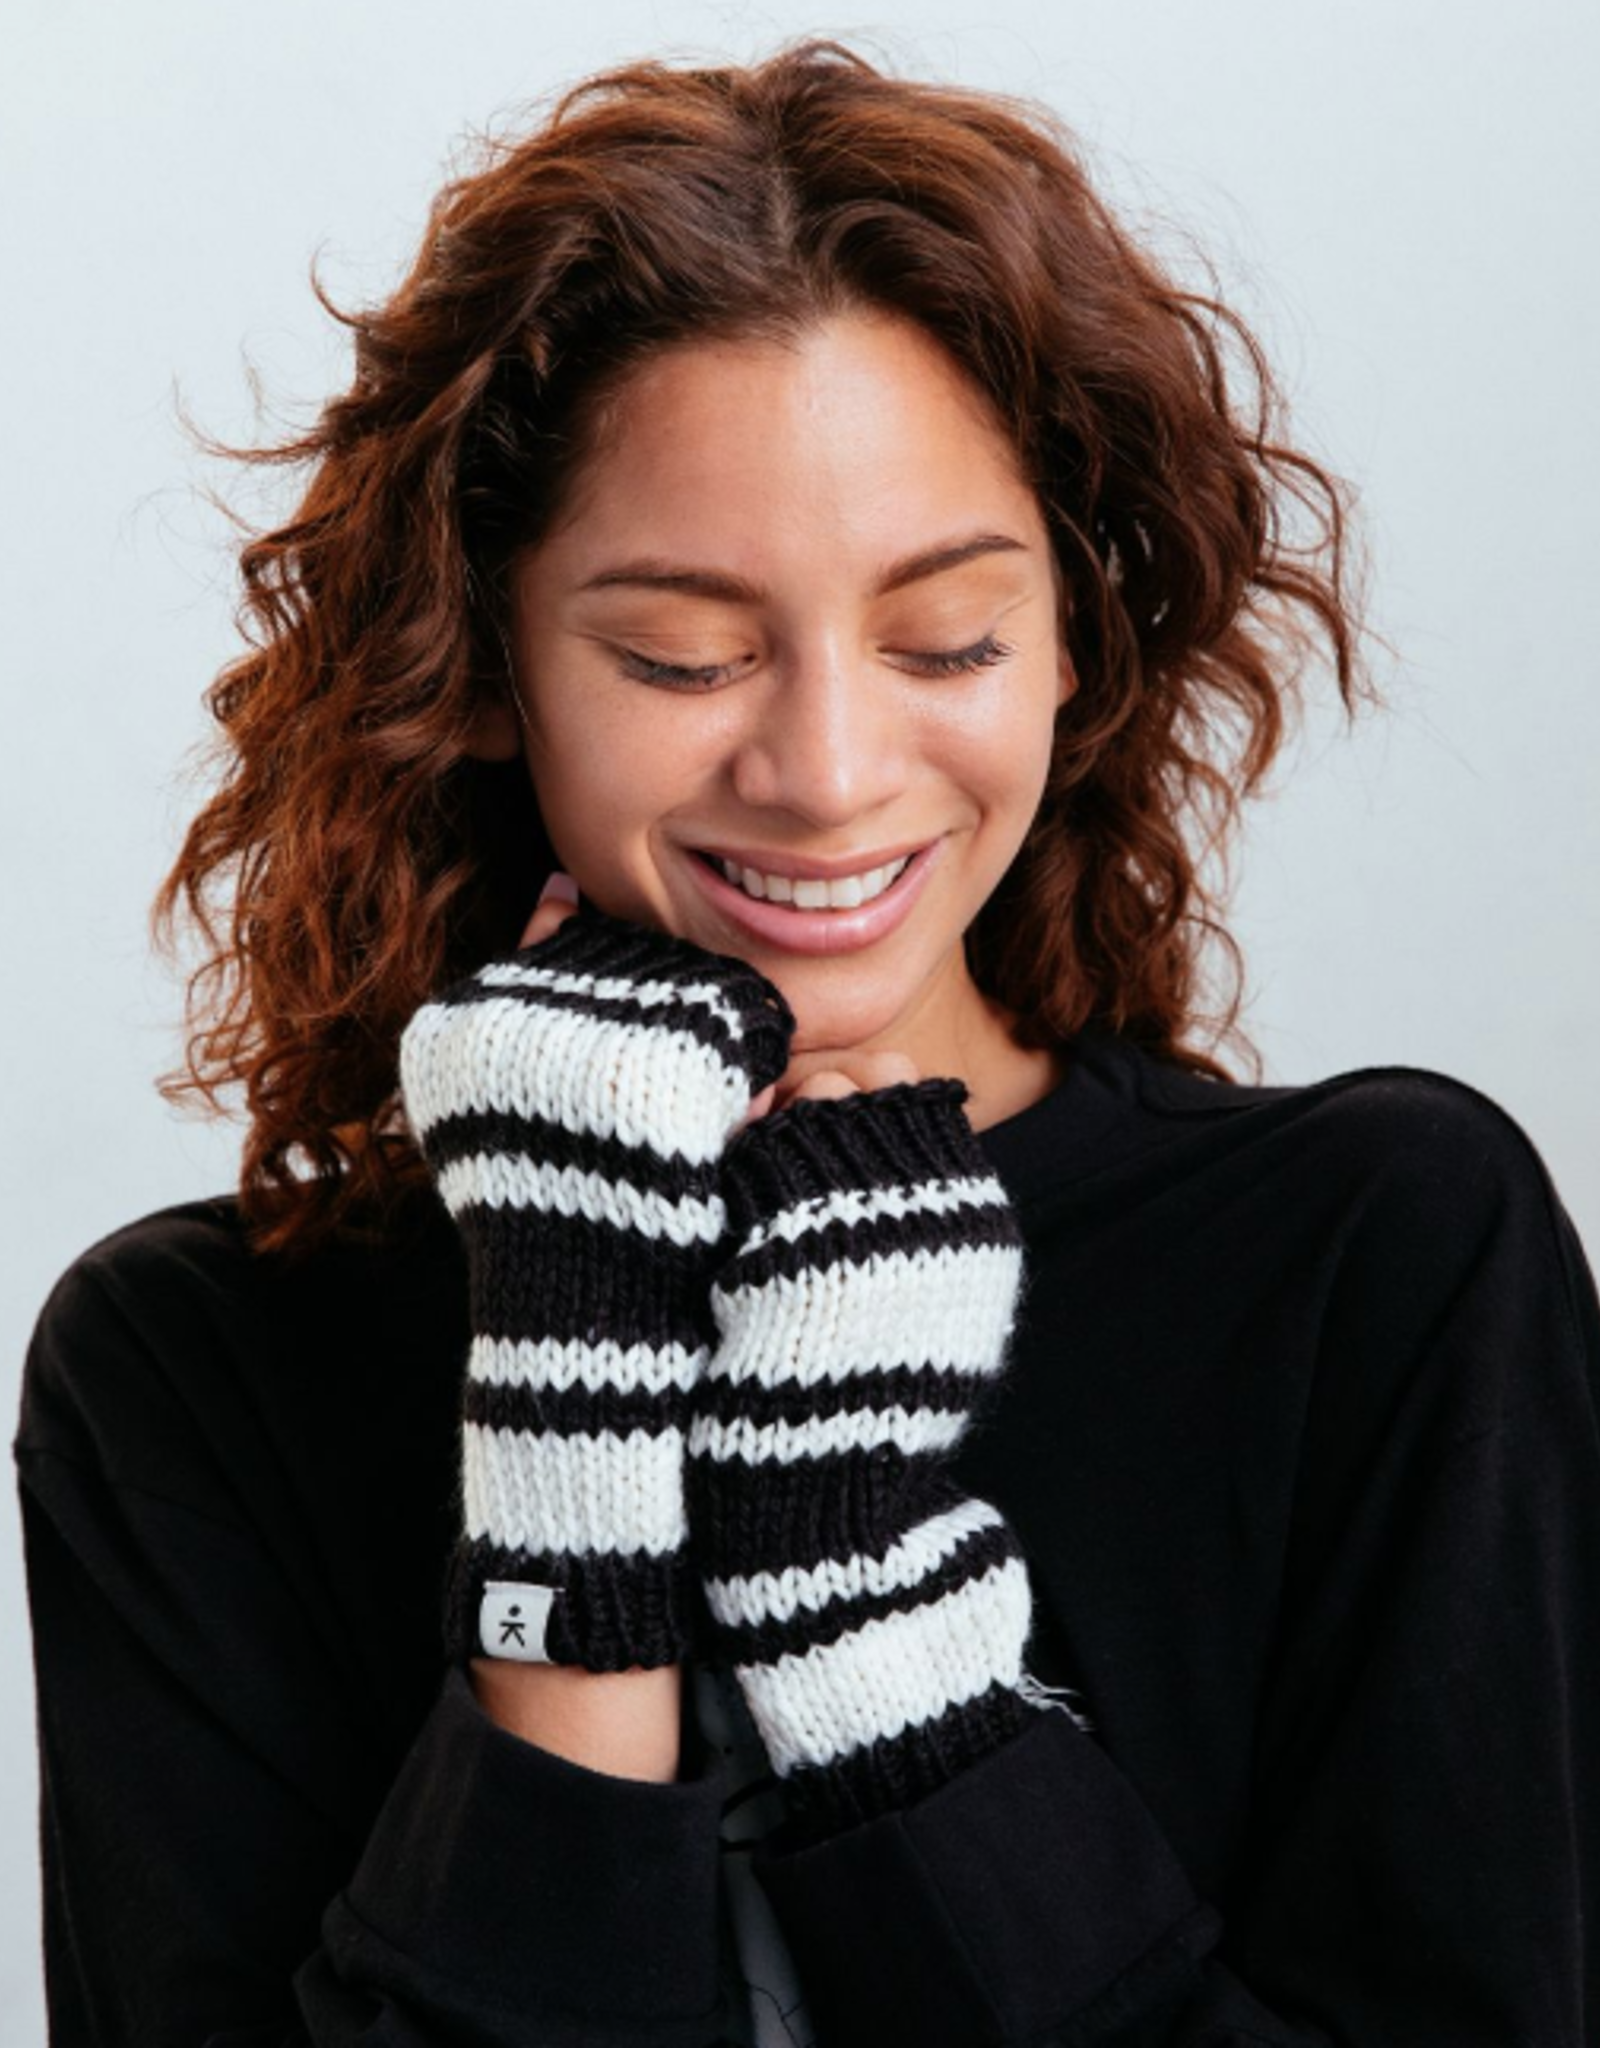 known supply August Fingerless Gloves- One Size